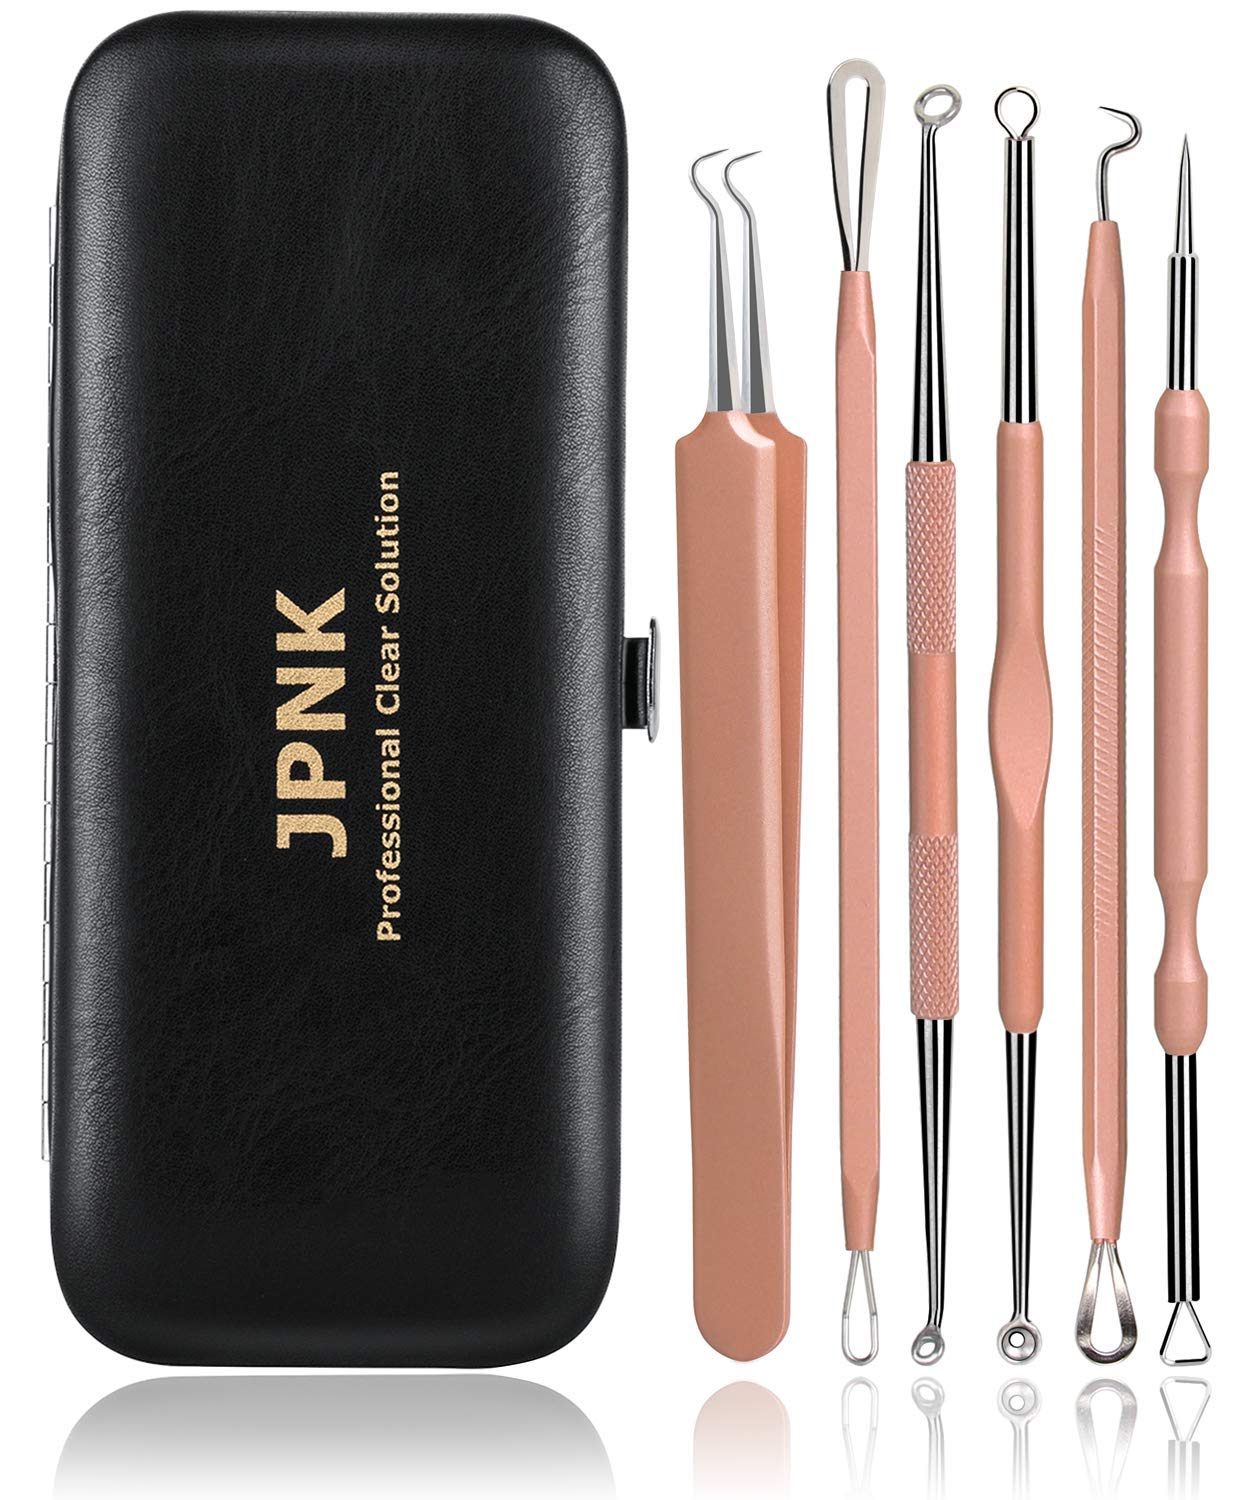 JPNK NEW Pink Blackhead Remover Tools